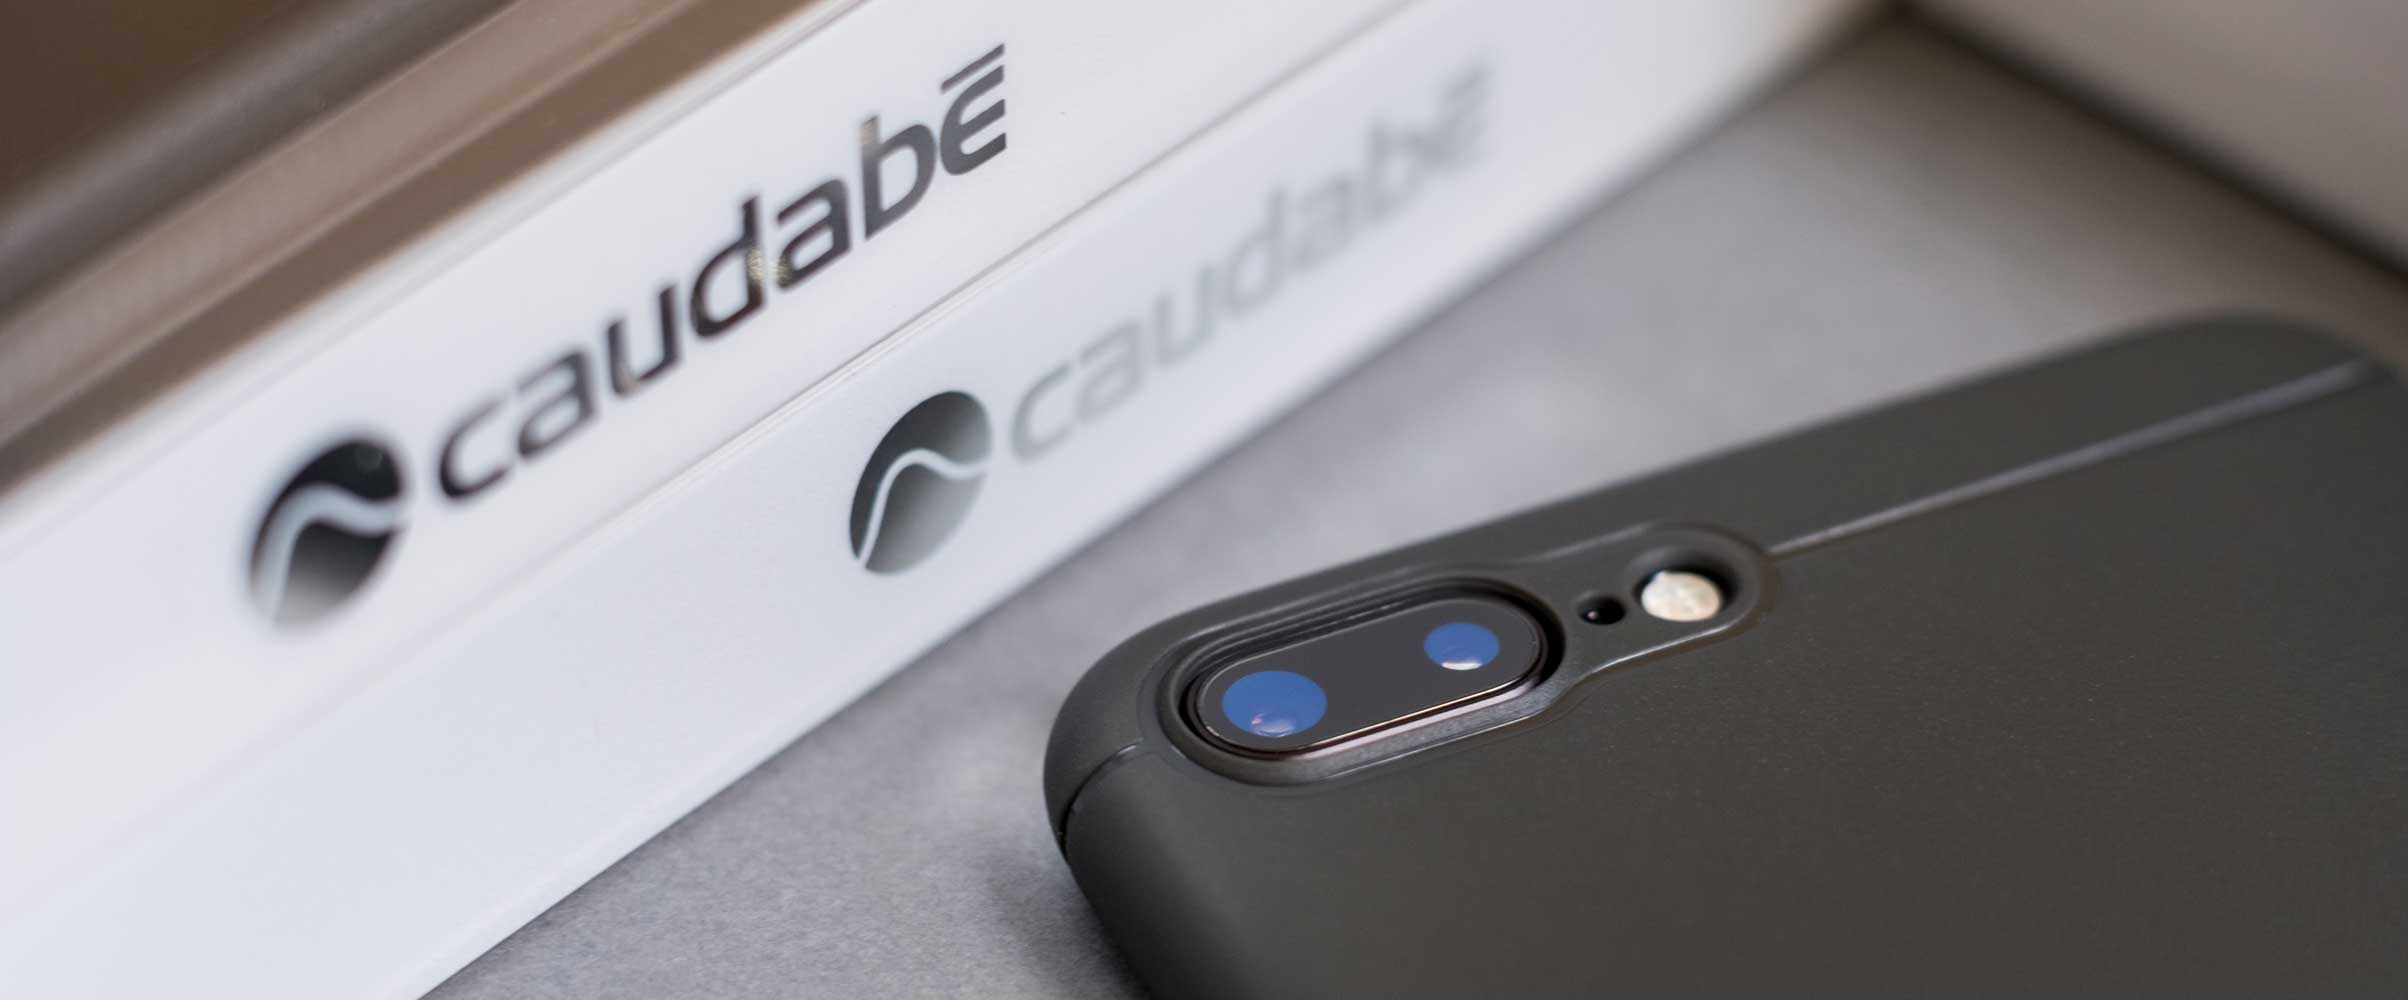 Caudabe Sheath | Slim, shock-absorbing protection for iPhone 7 | Box